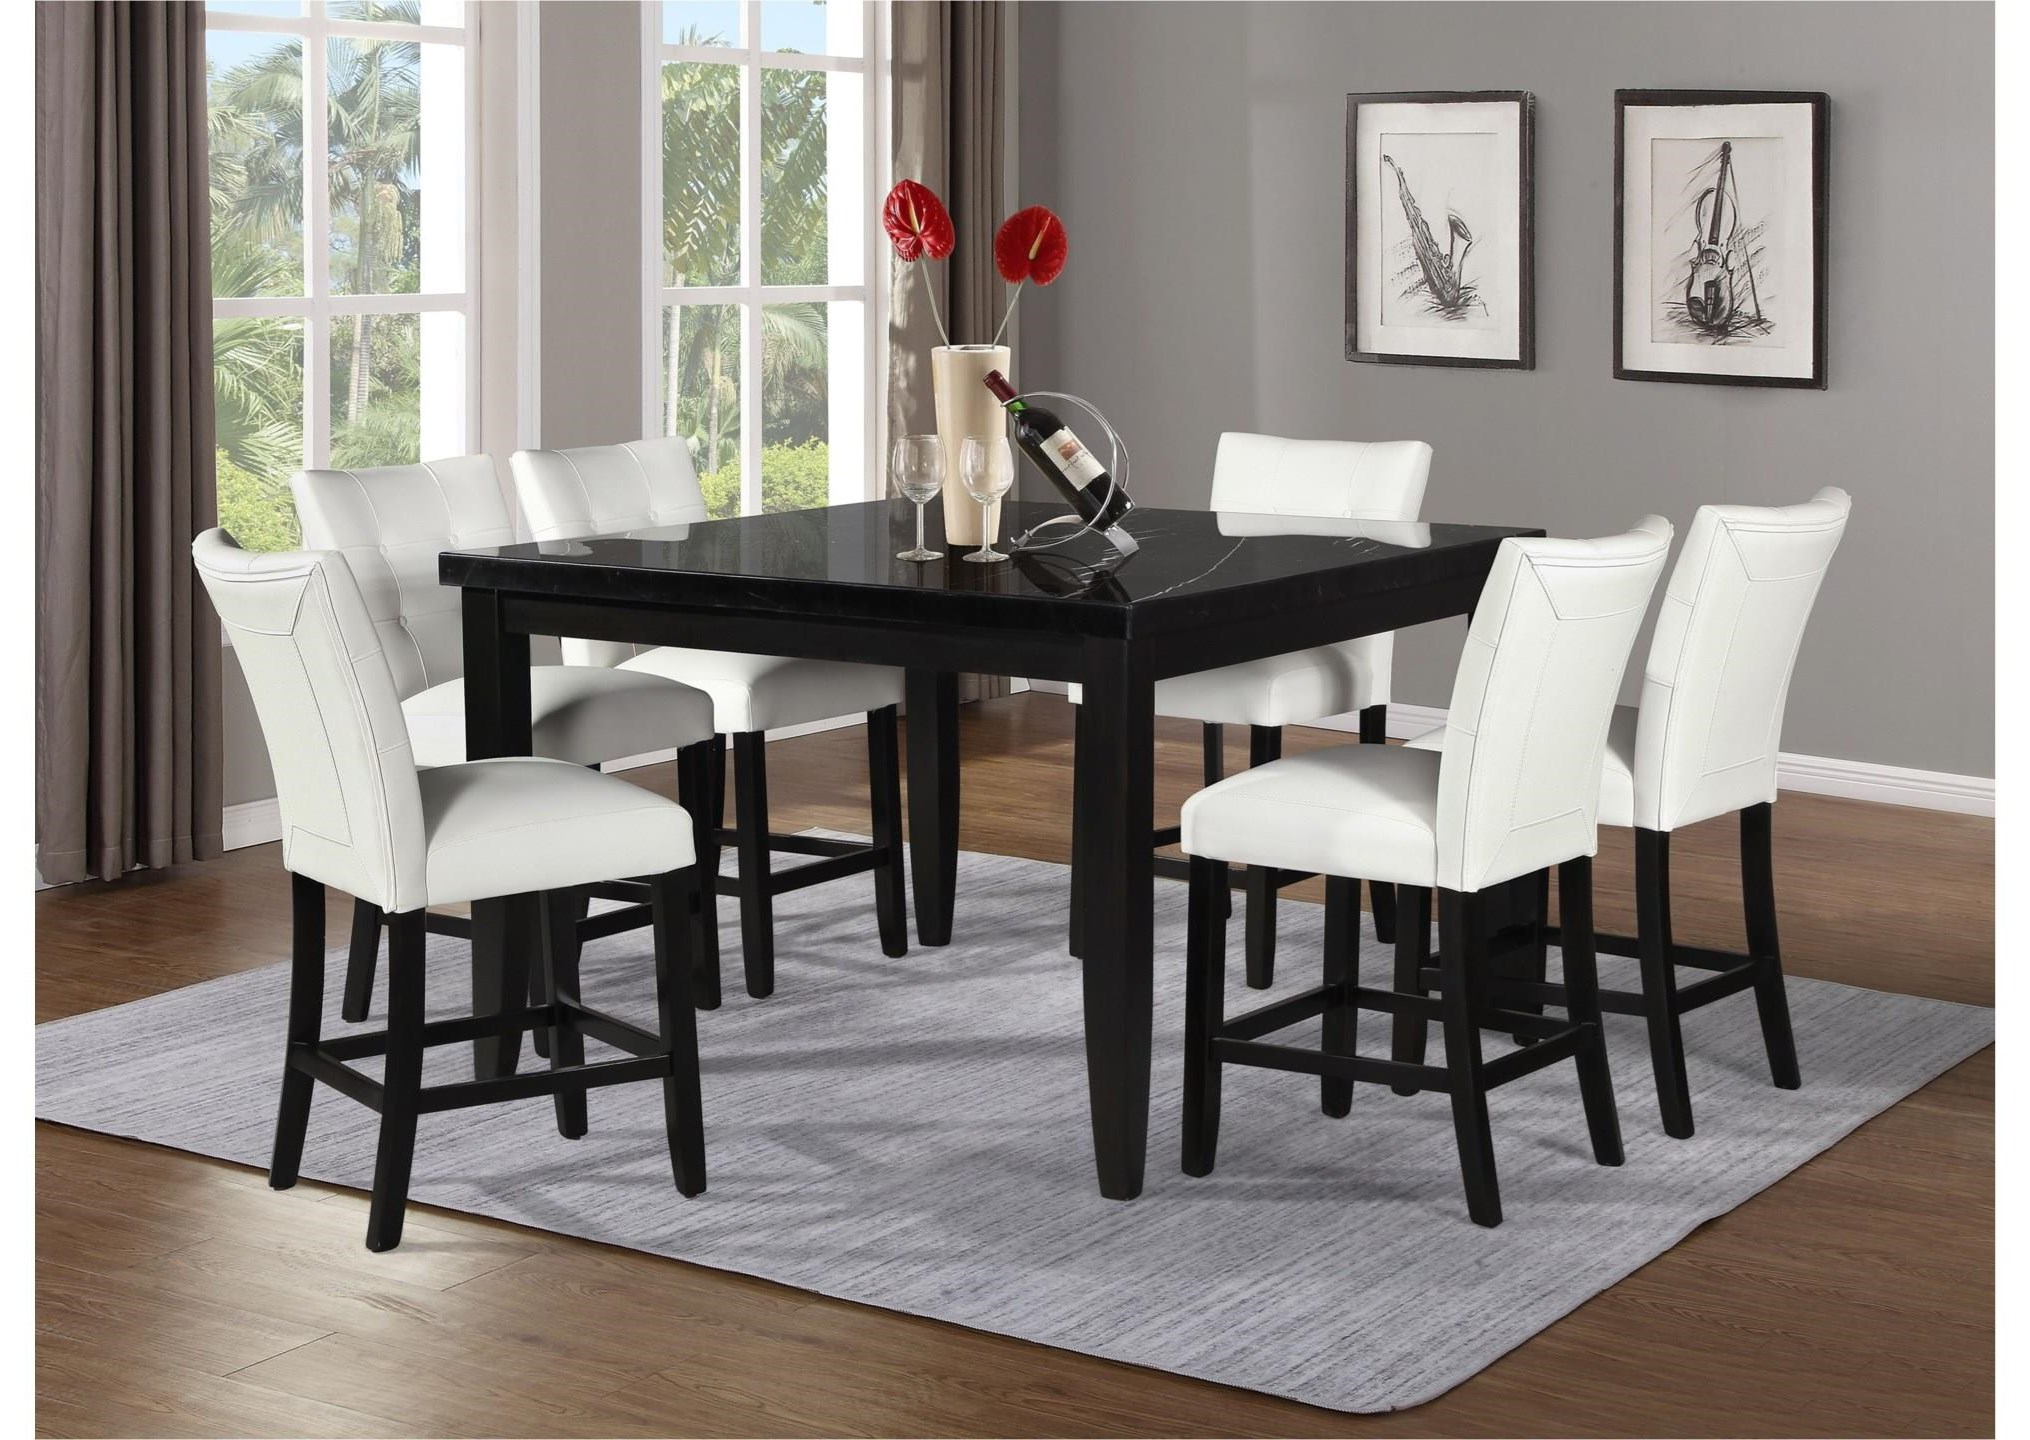 Sidney Sidney 5-Piece Dining Set by Steve Silver at Morris Home